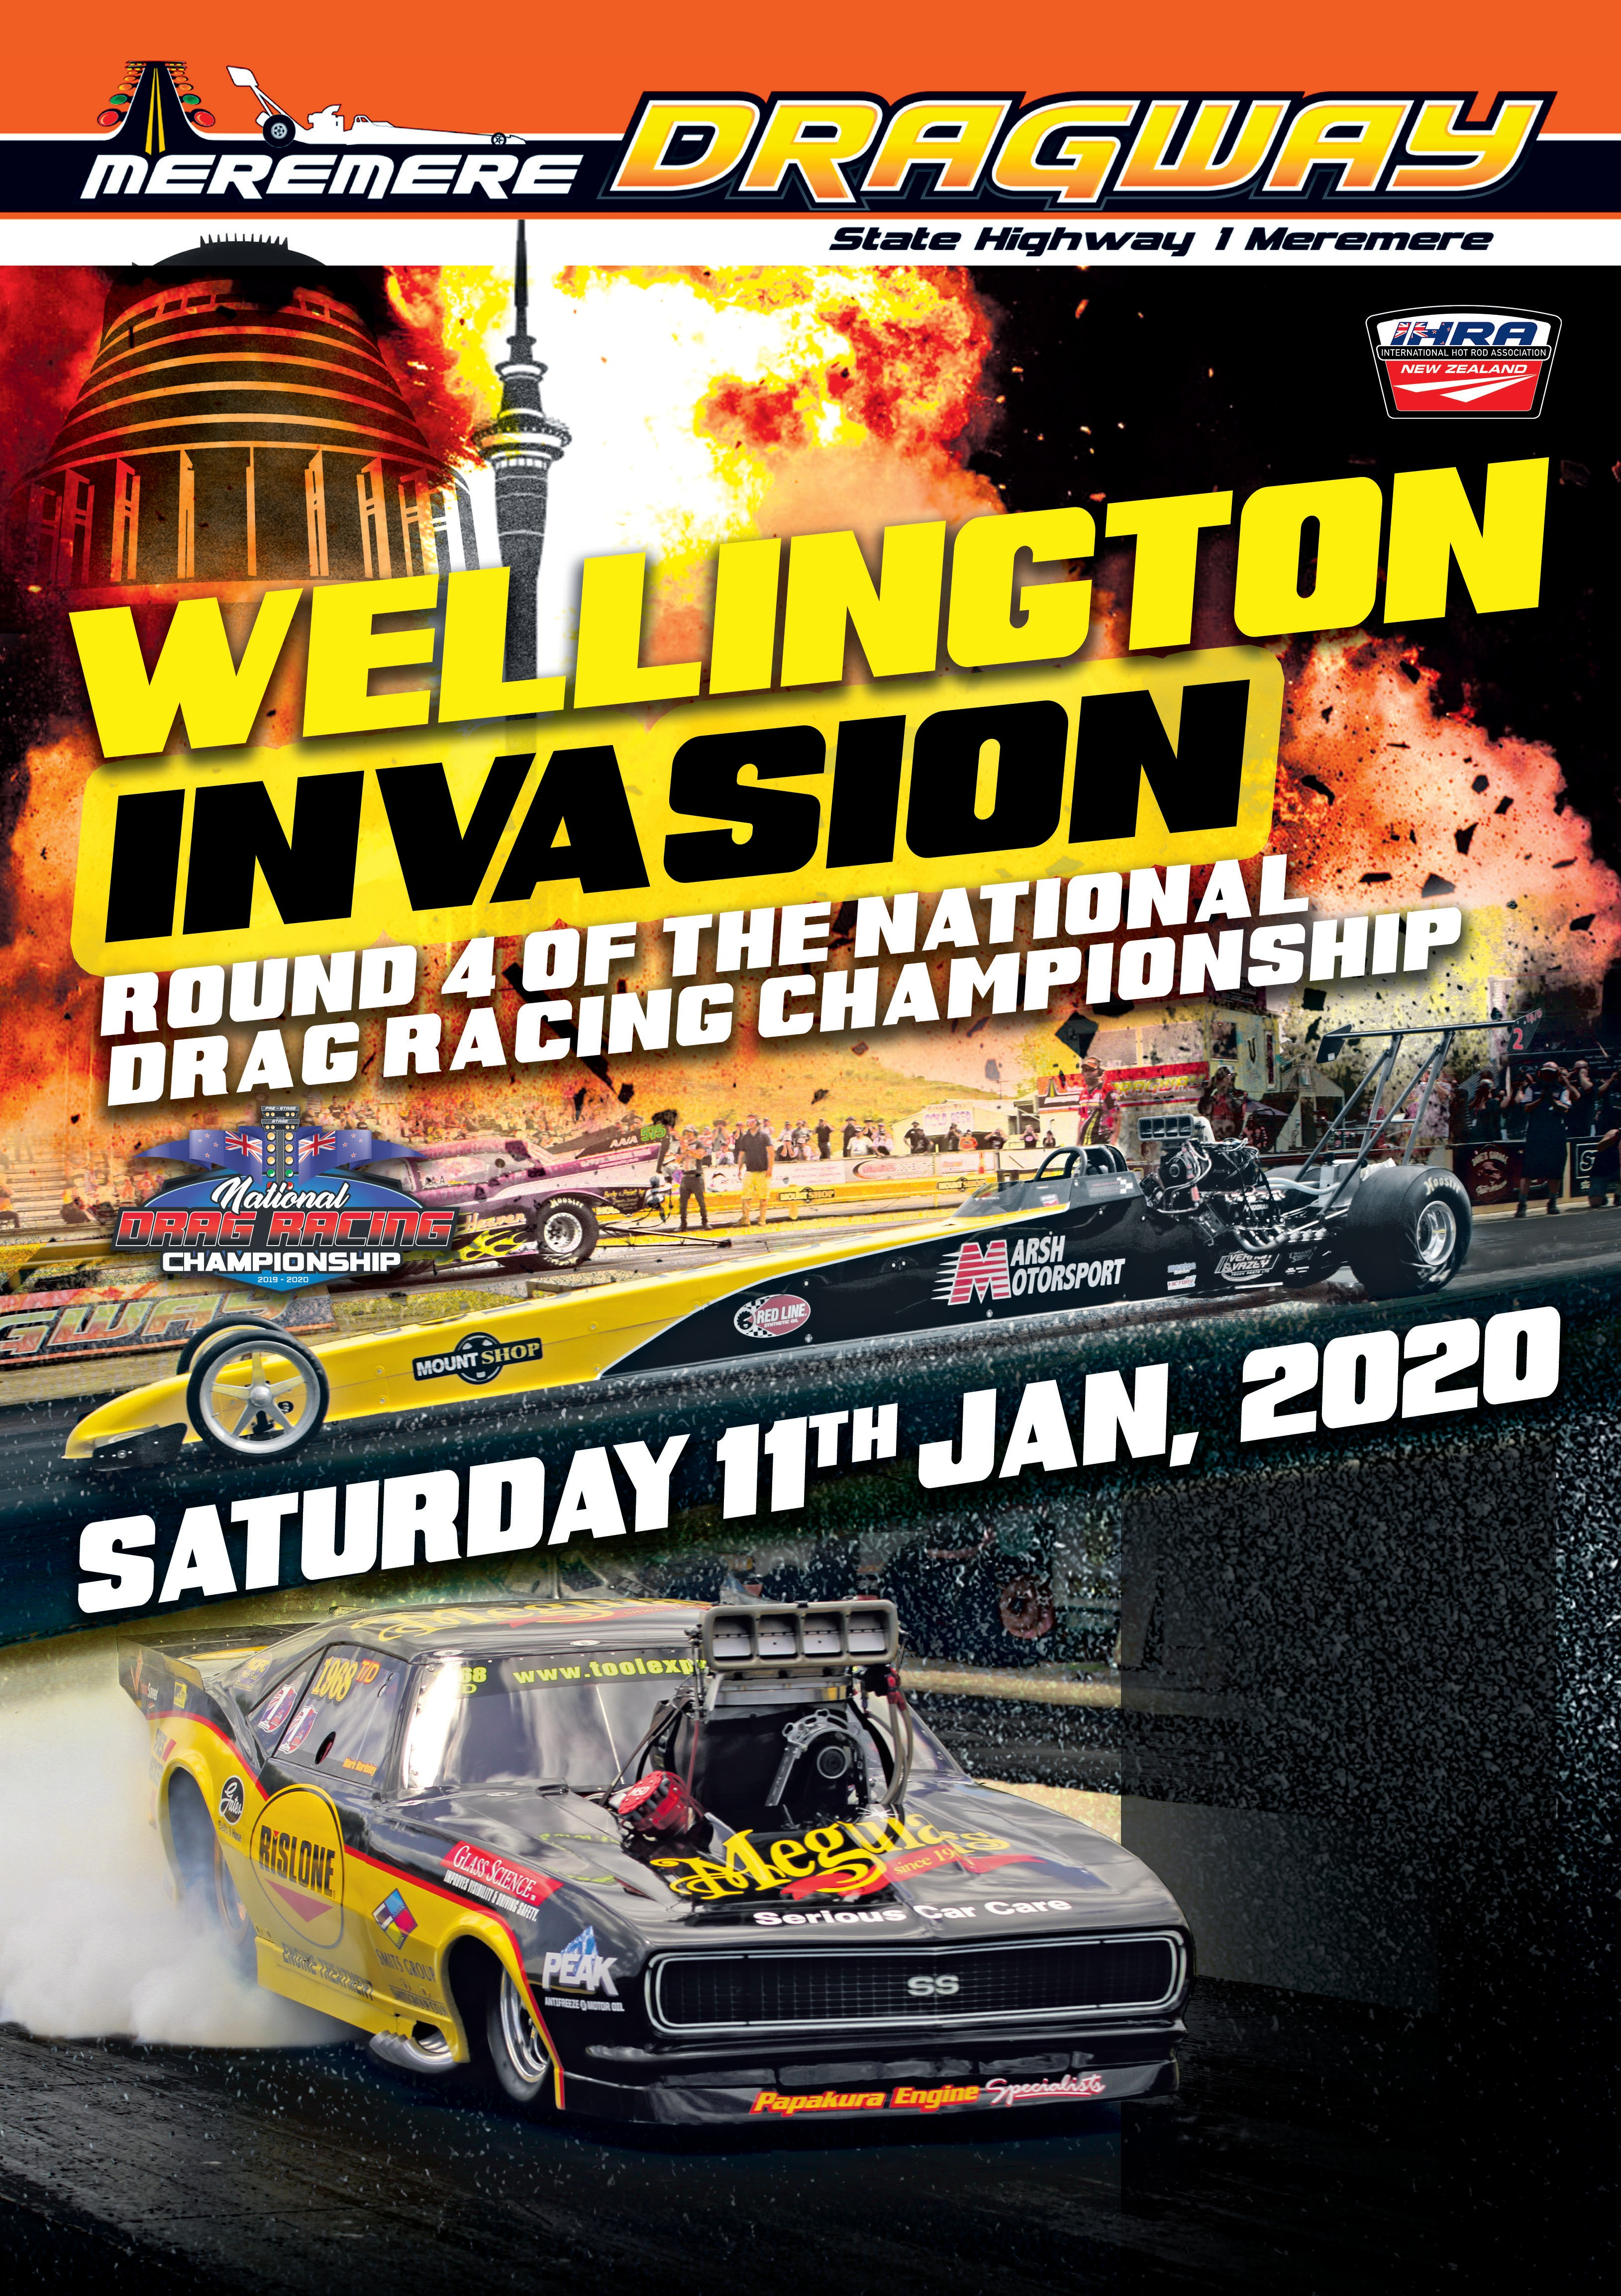 2019/20 National Drag Racing Series Round 4 poster